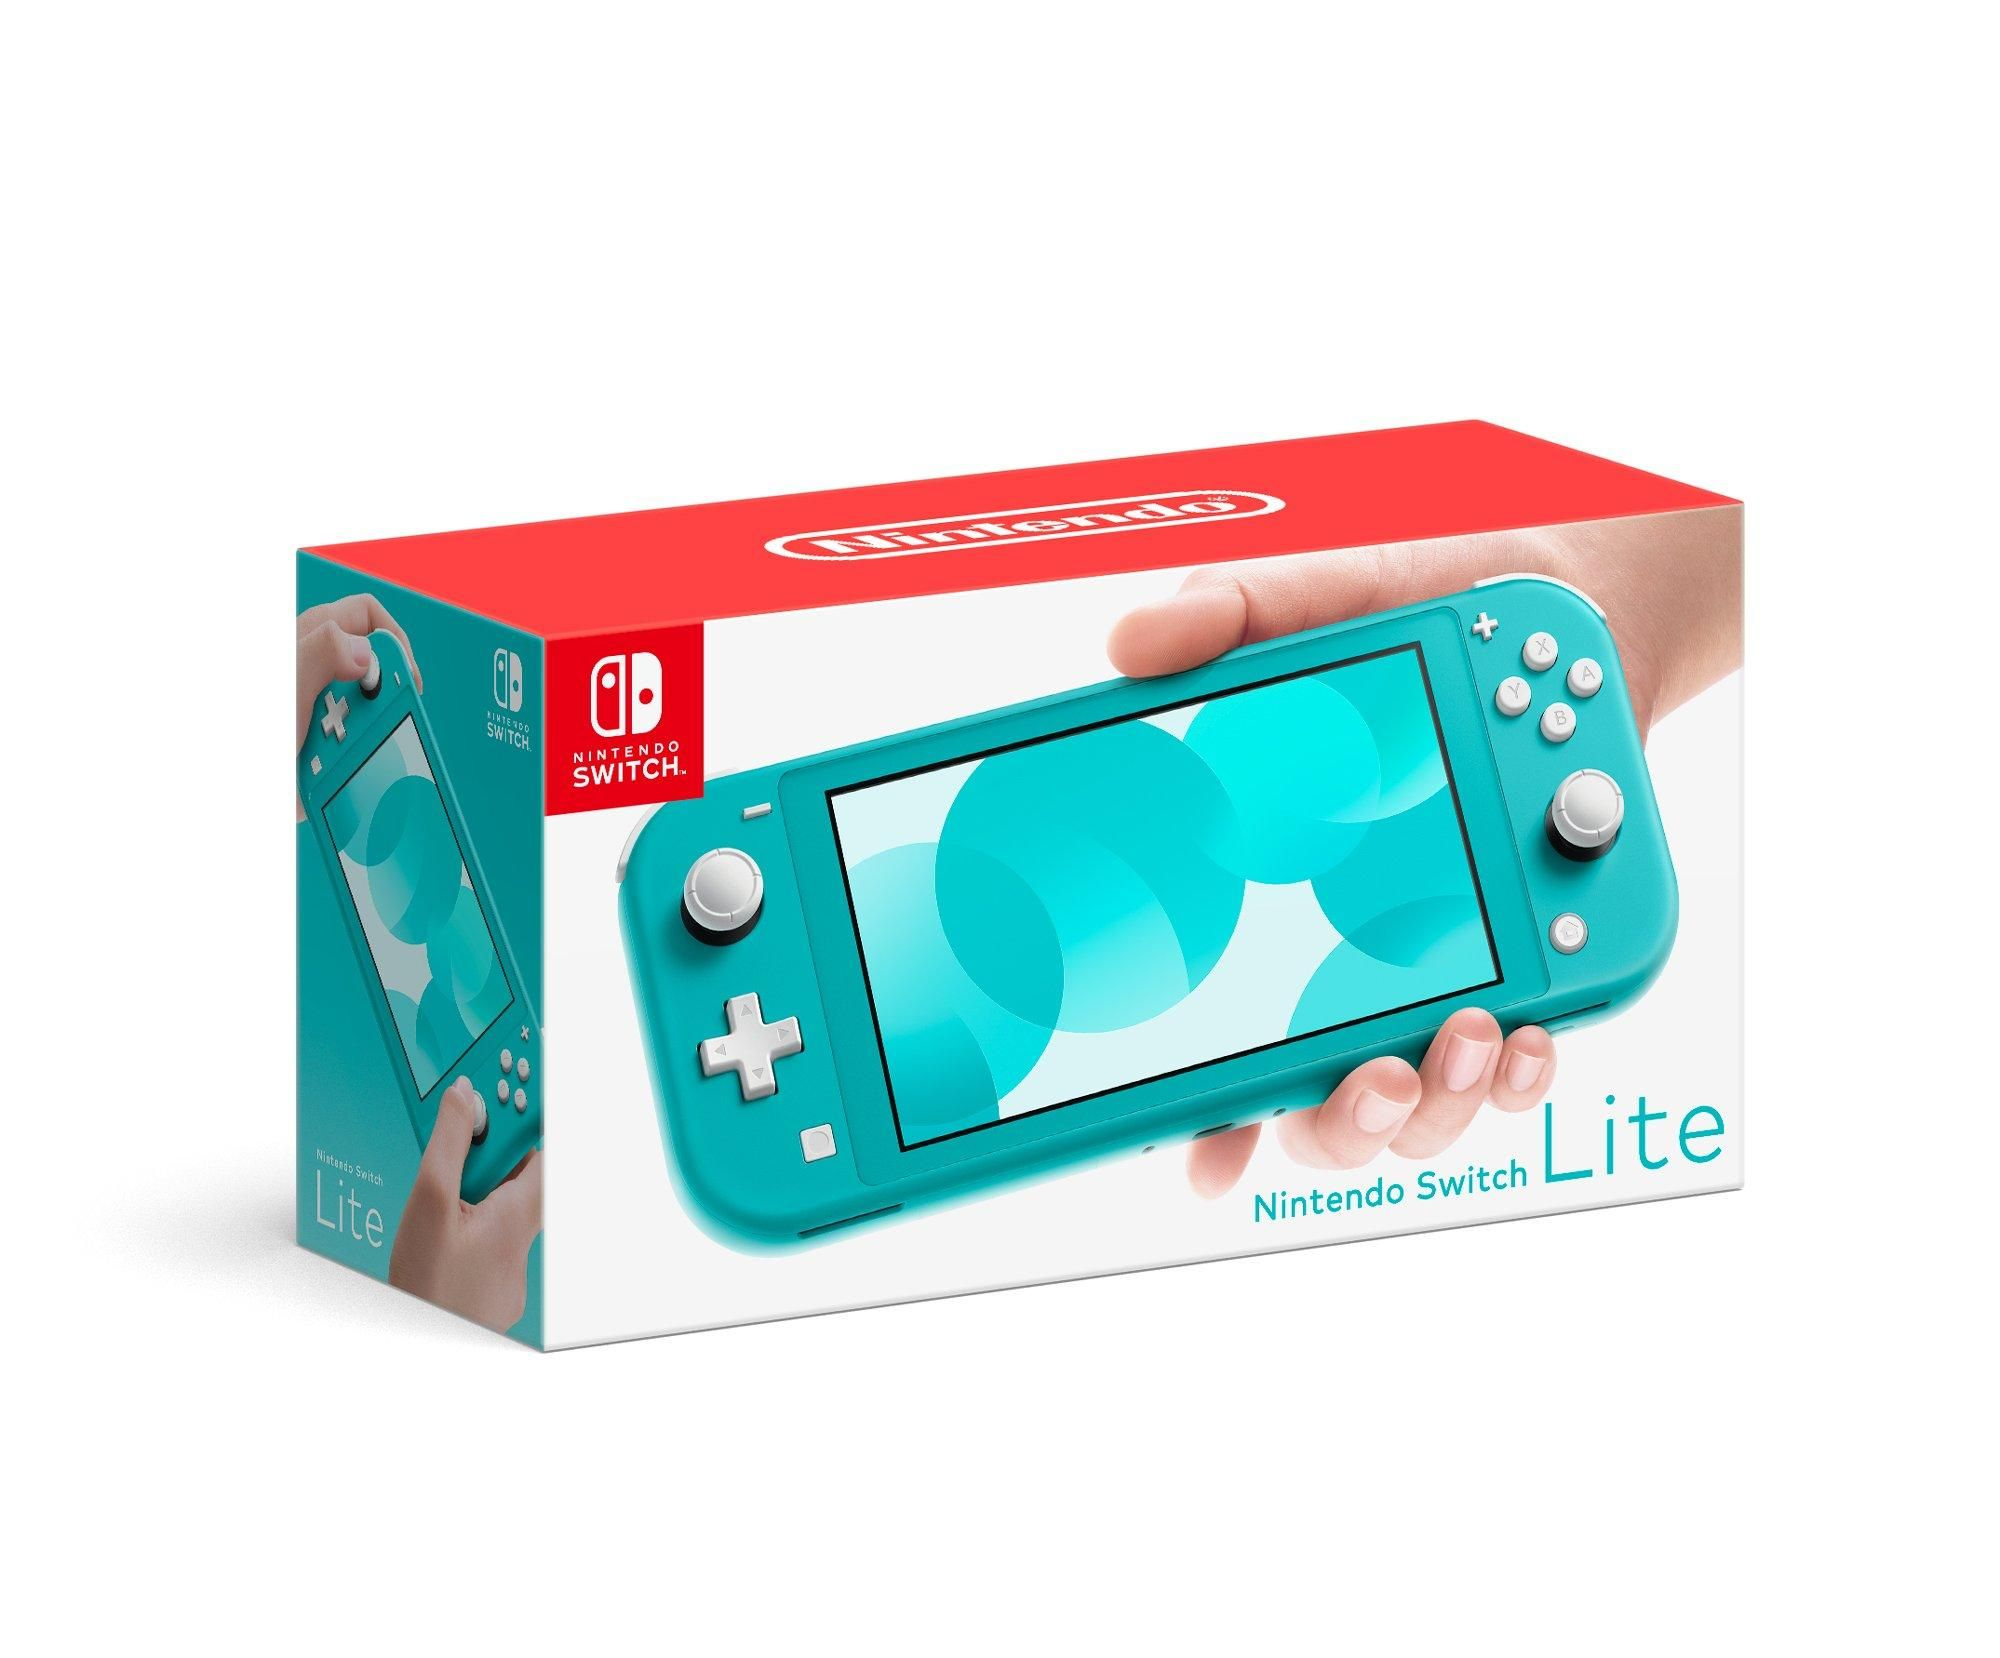 Nintendo Switch Lite Turquoise (With images) Nintendo